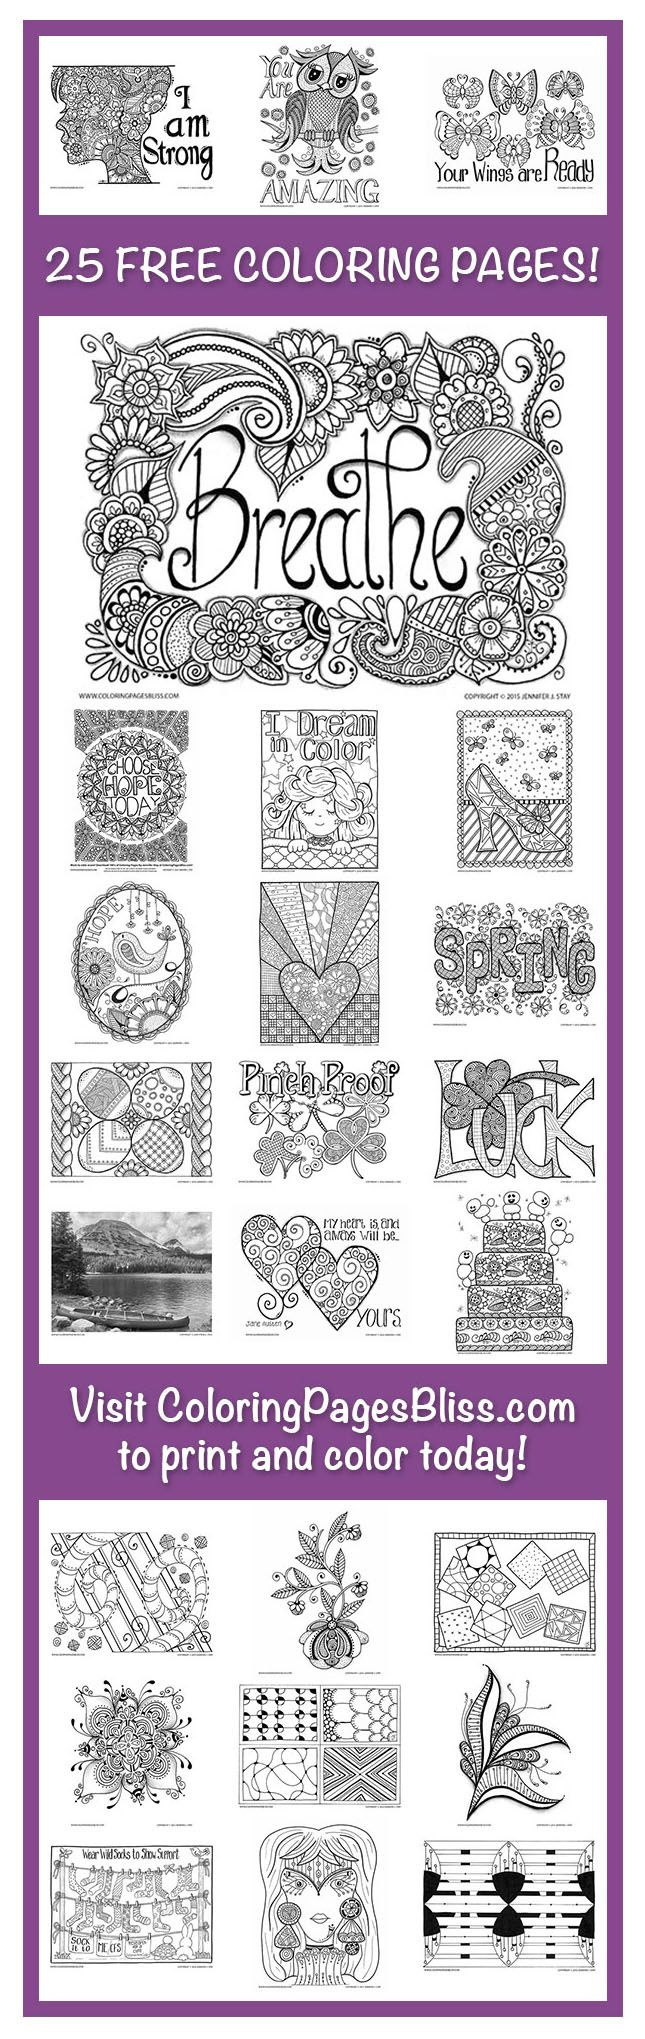 Pdf Coloring Pages For Adults